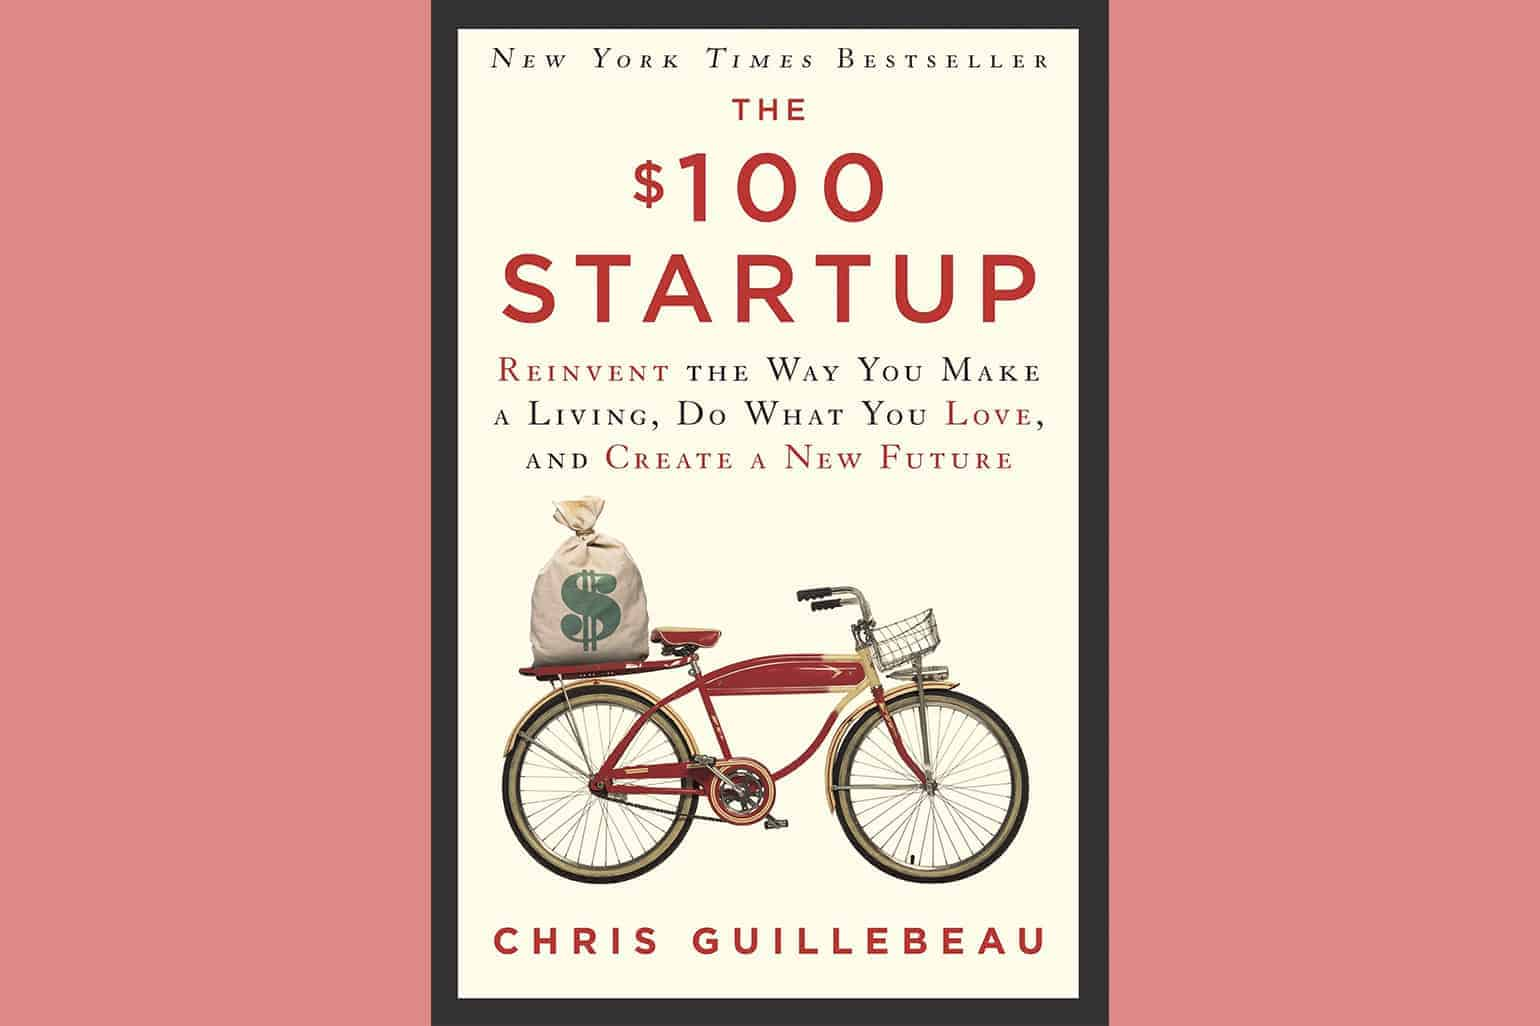 The 100 Startup Reinvent The Way You Make A Living Do What You Love And Create A New Future By Chris Guillebeau